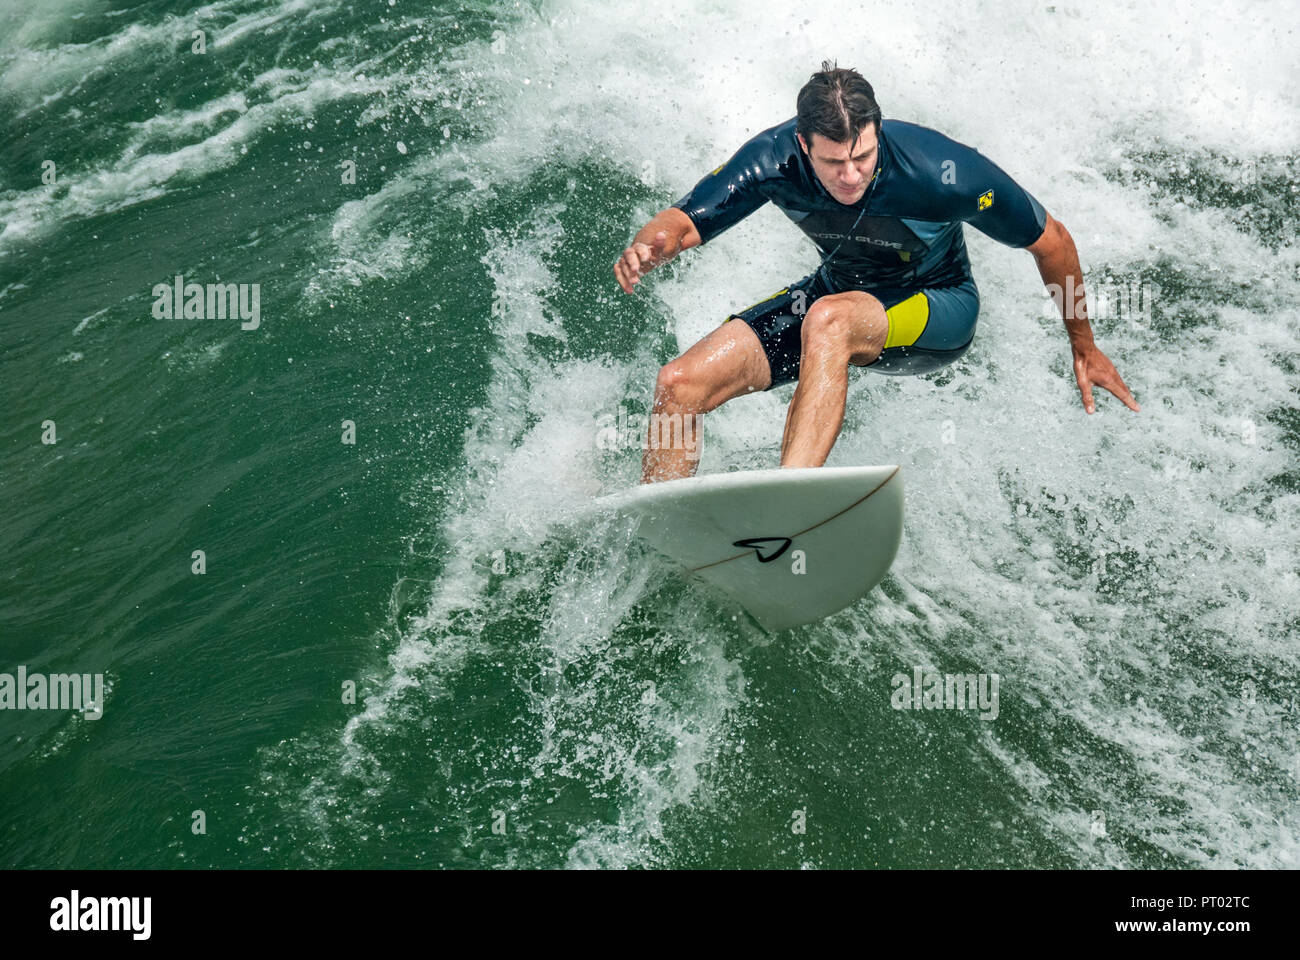 Surfer carving off the lip of a wave in Manhattan Beach, California. (USA) - Stock Image